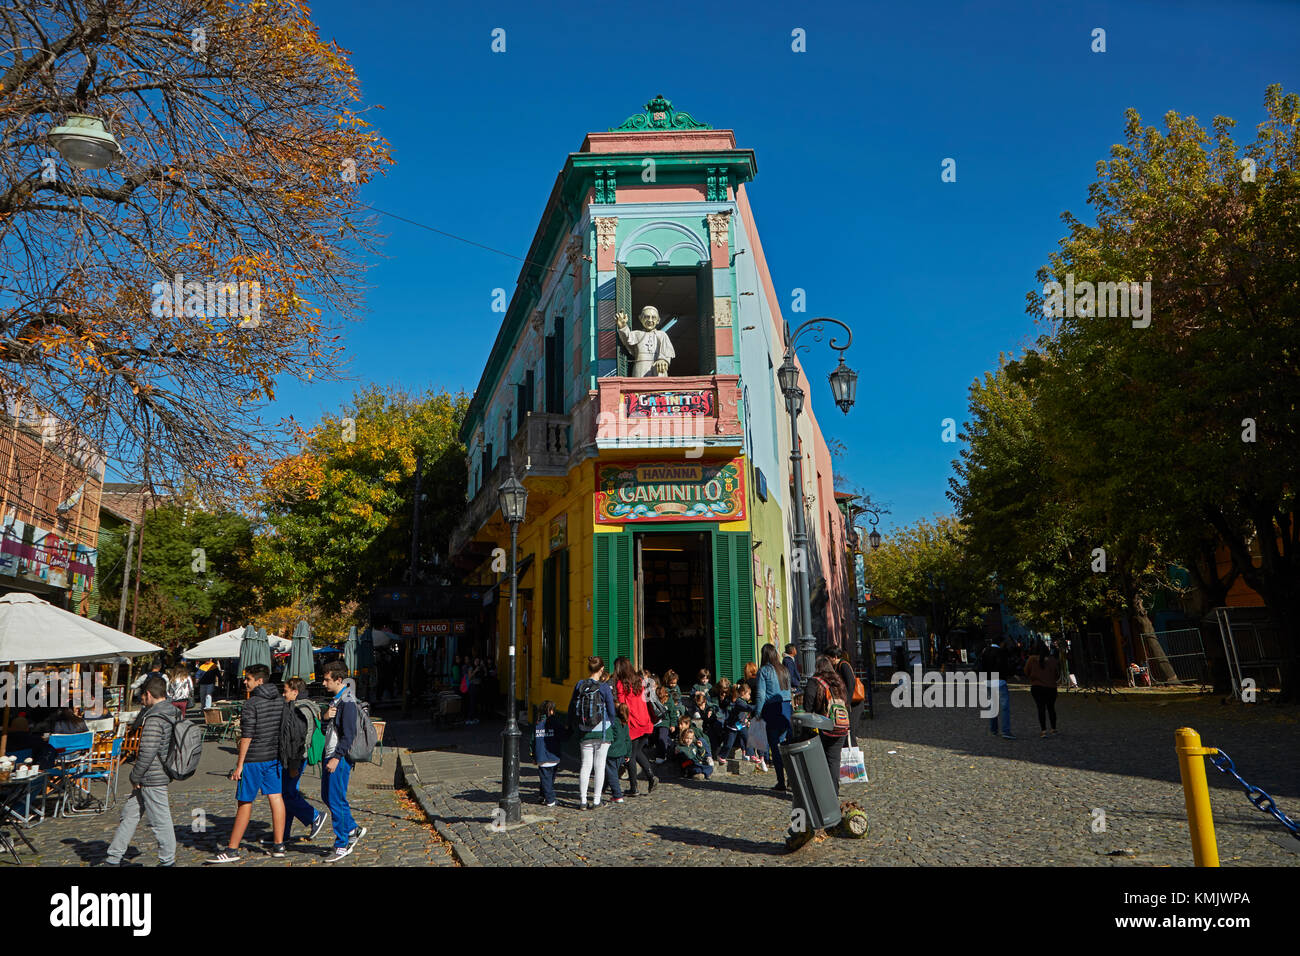 'Pope' on balcony by El Caminito, La Boca, Buenos Aires, Argentina, South America - Stock Image